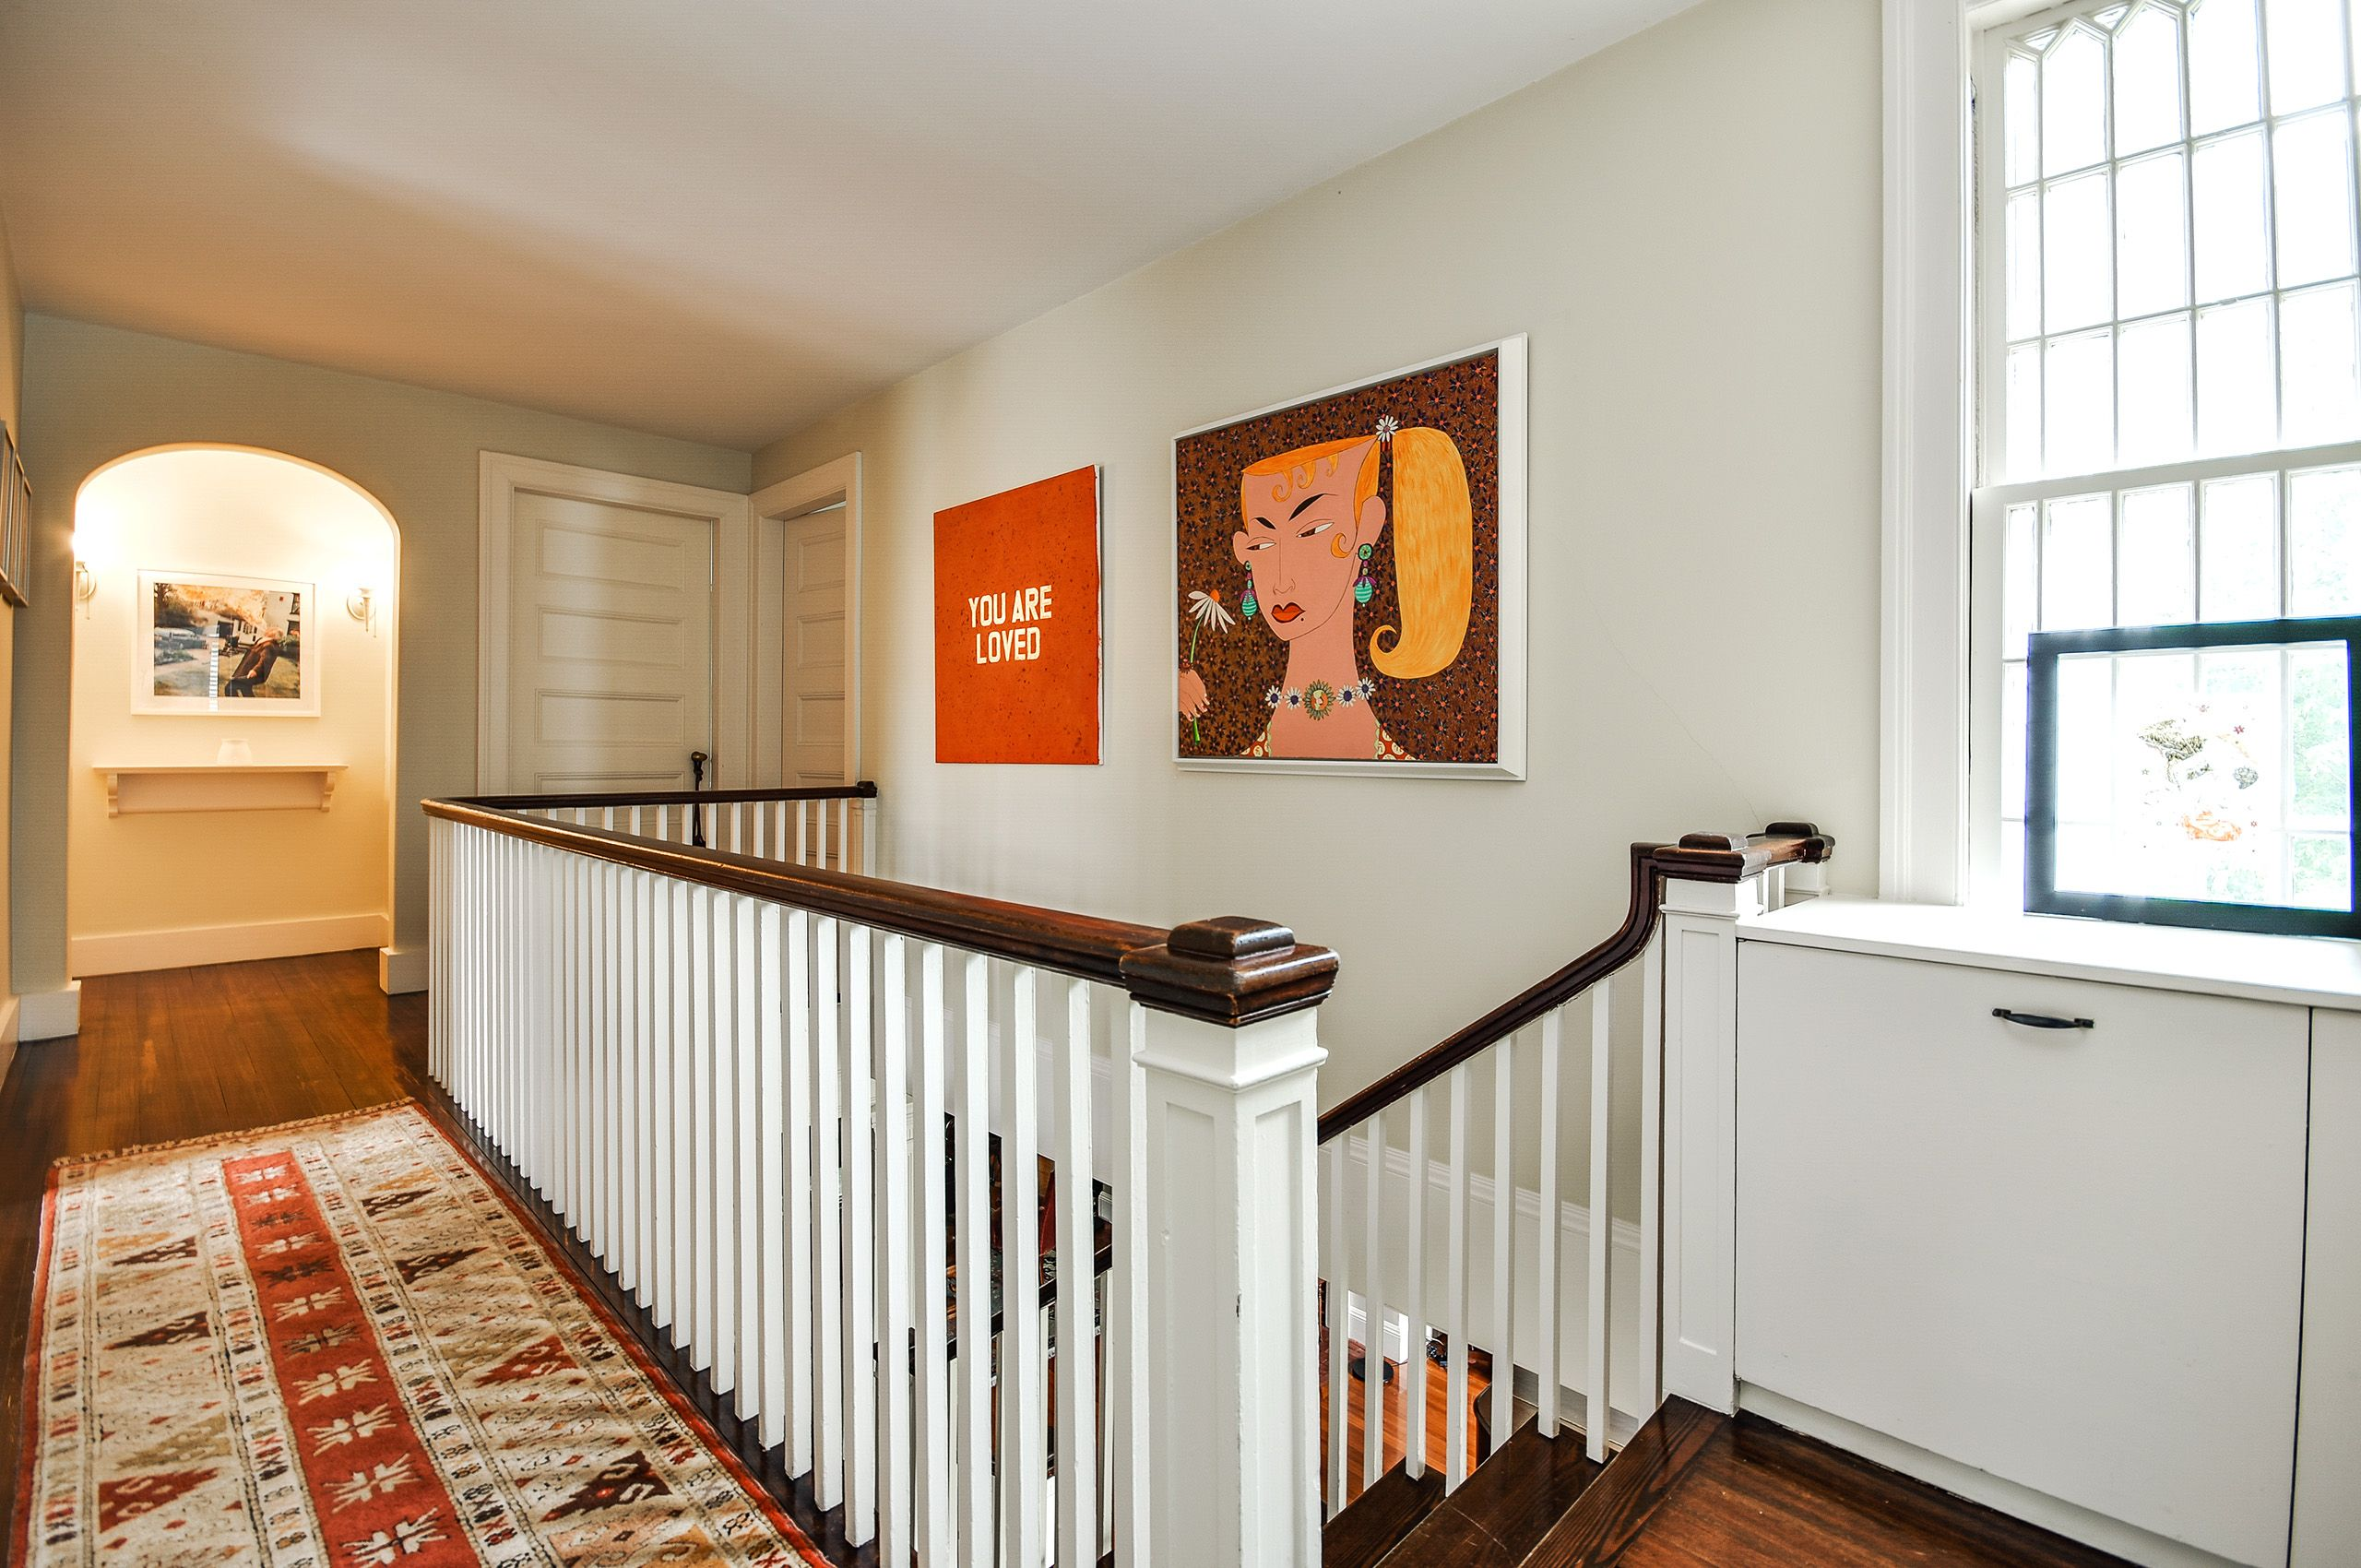 WestMainResidence-WestboroughMA-UpperStair.jpg